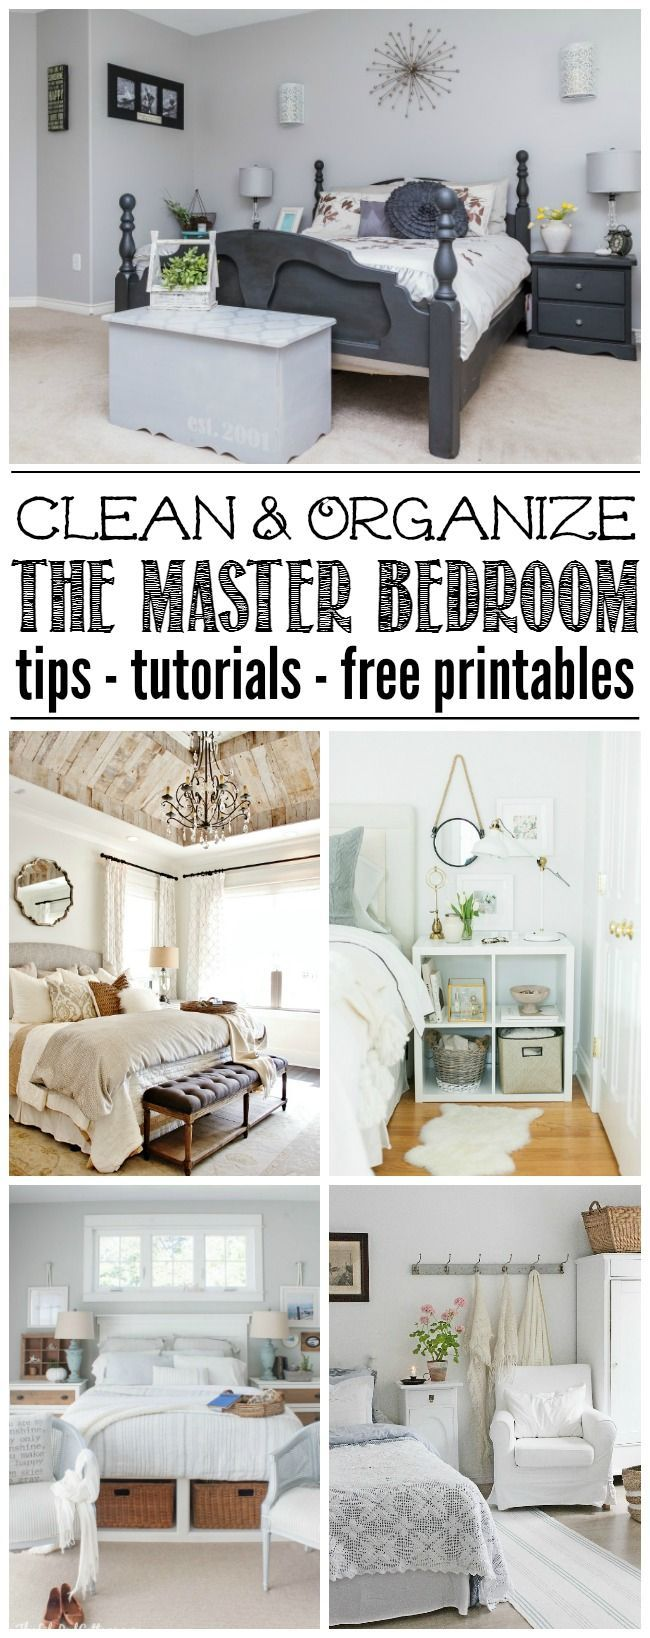 Master Bedroom Organization And Cleaning Tips Master Bedroom Organization Organization Bedroom Organization Hacks Bedroom